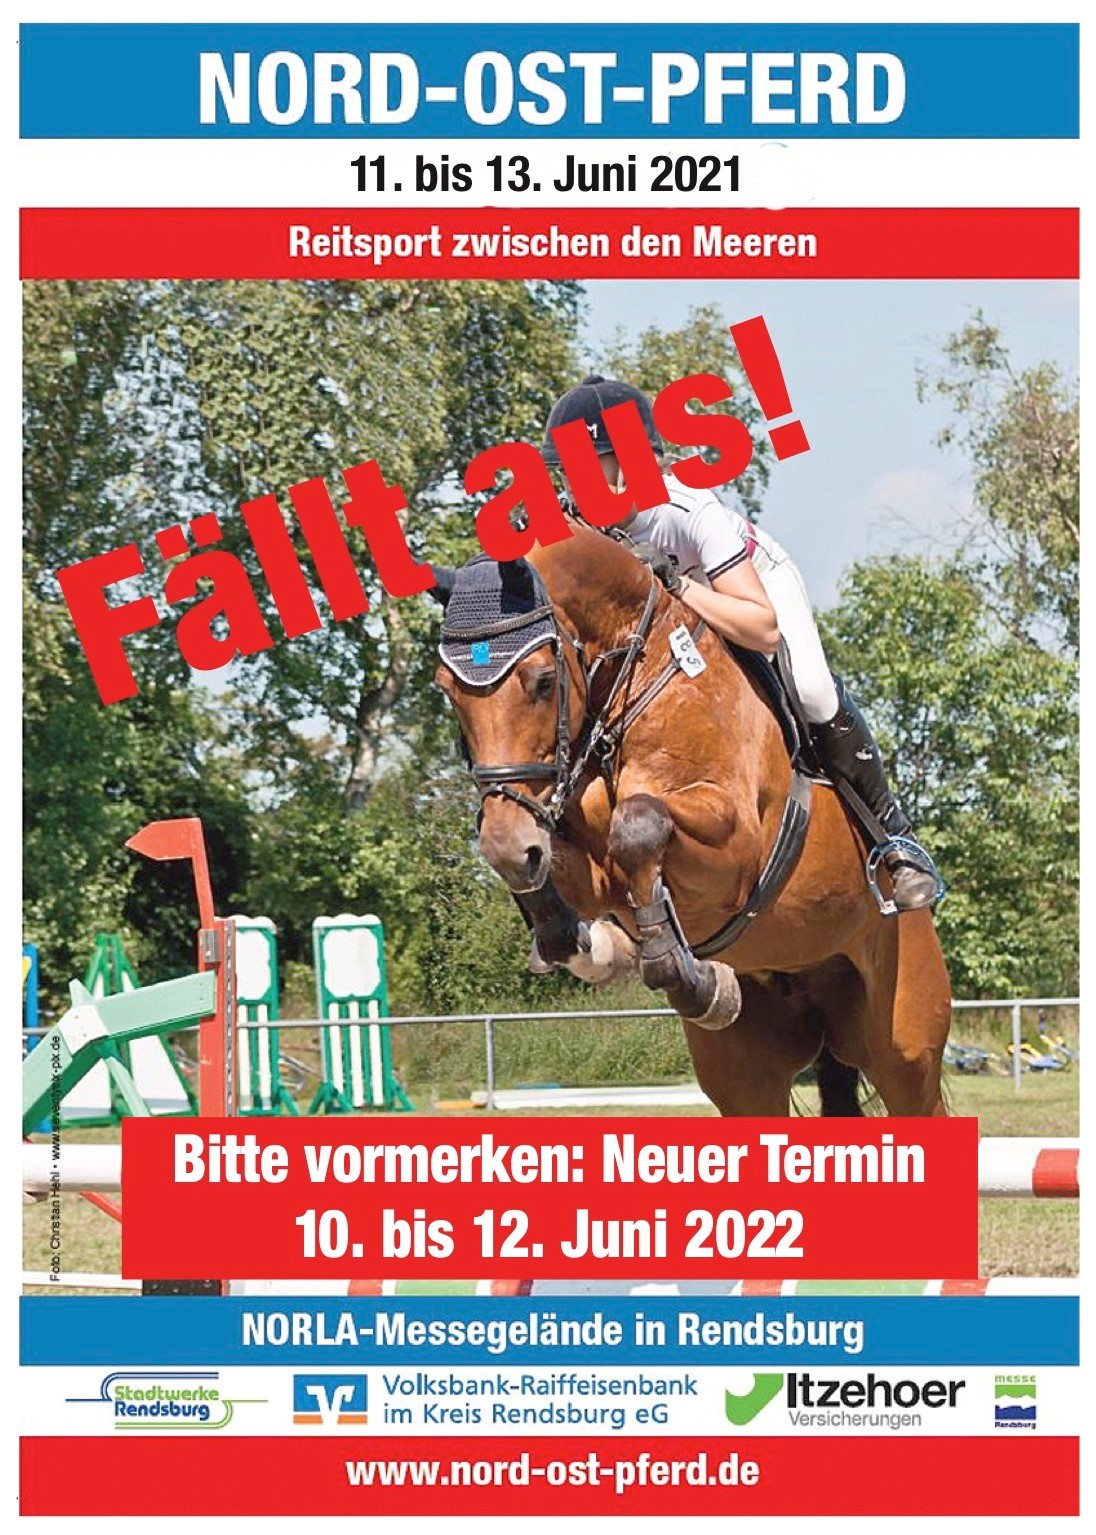 tl_files/Readaktion/Sponsoren_2020/plakat22.jpg